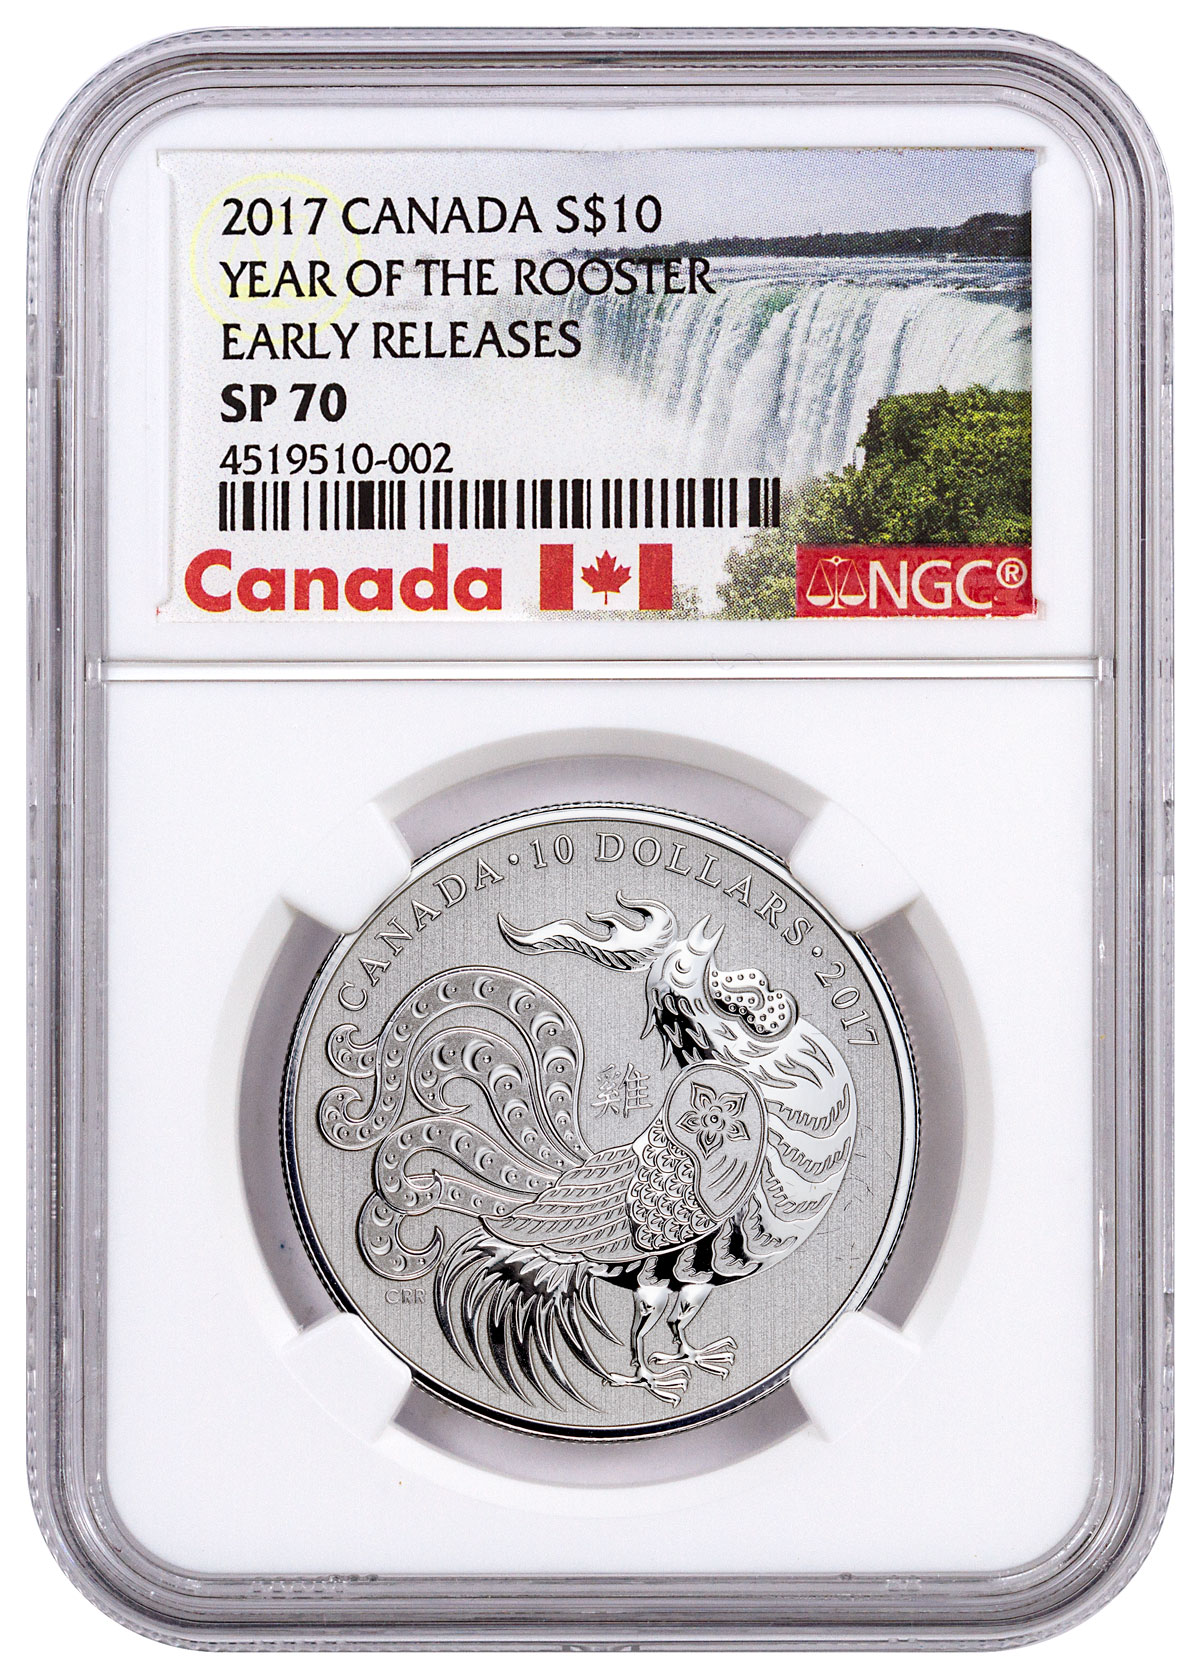 2017 Canada Year of the Rooster 1/2 oz Silver Lunar Specimen $10 Coin NGC SP70 ER (Exclusive Canada Label)